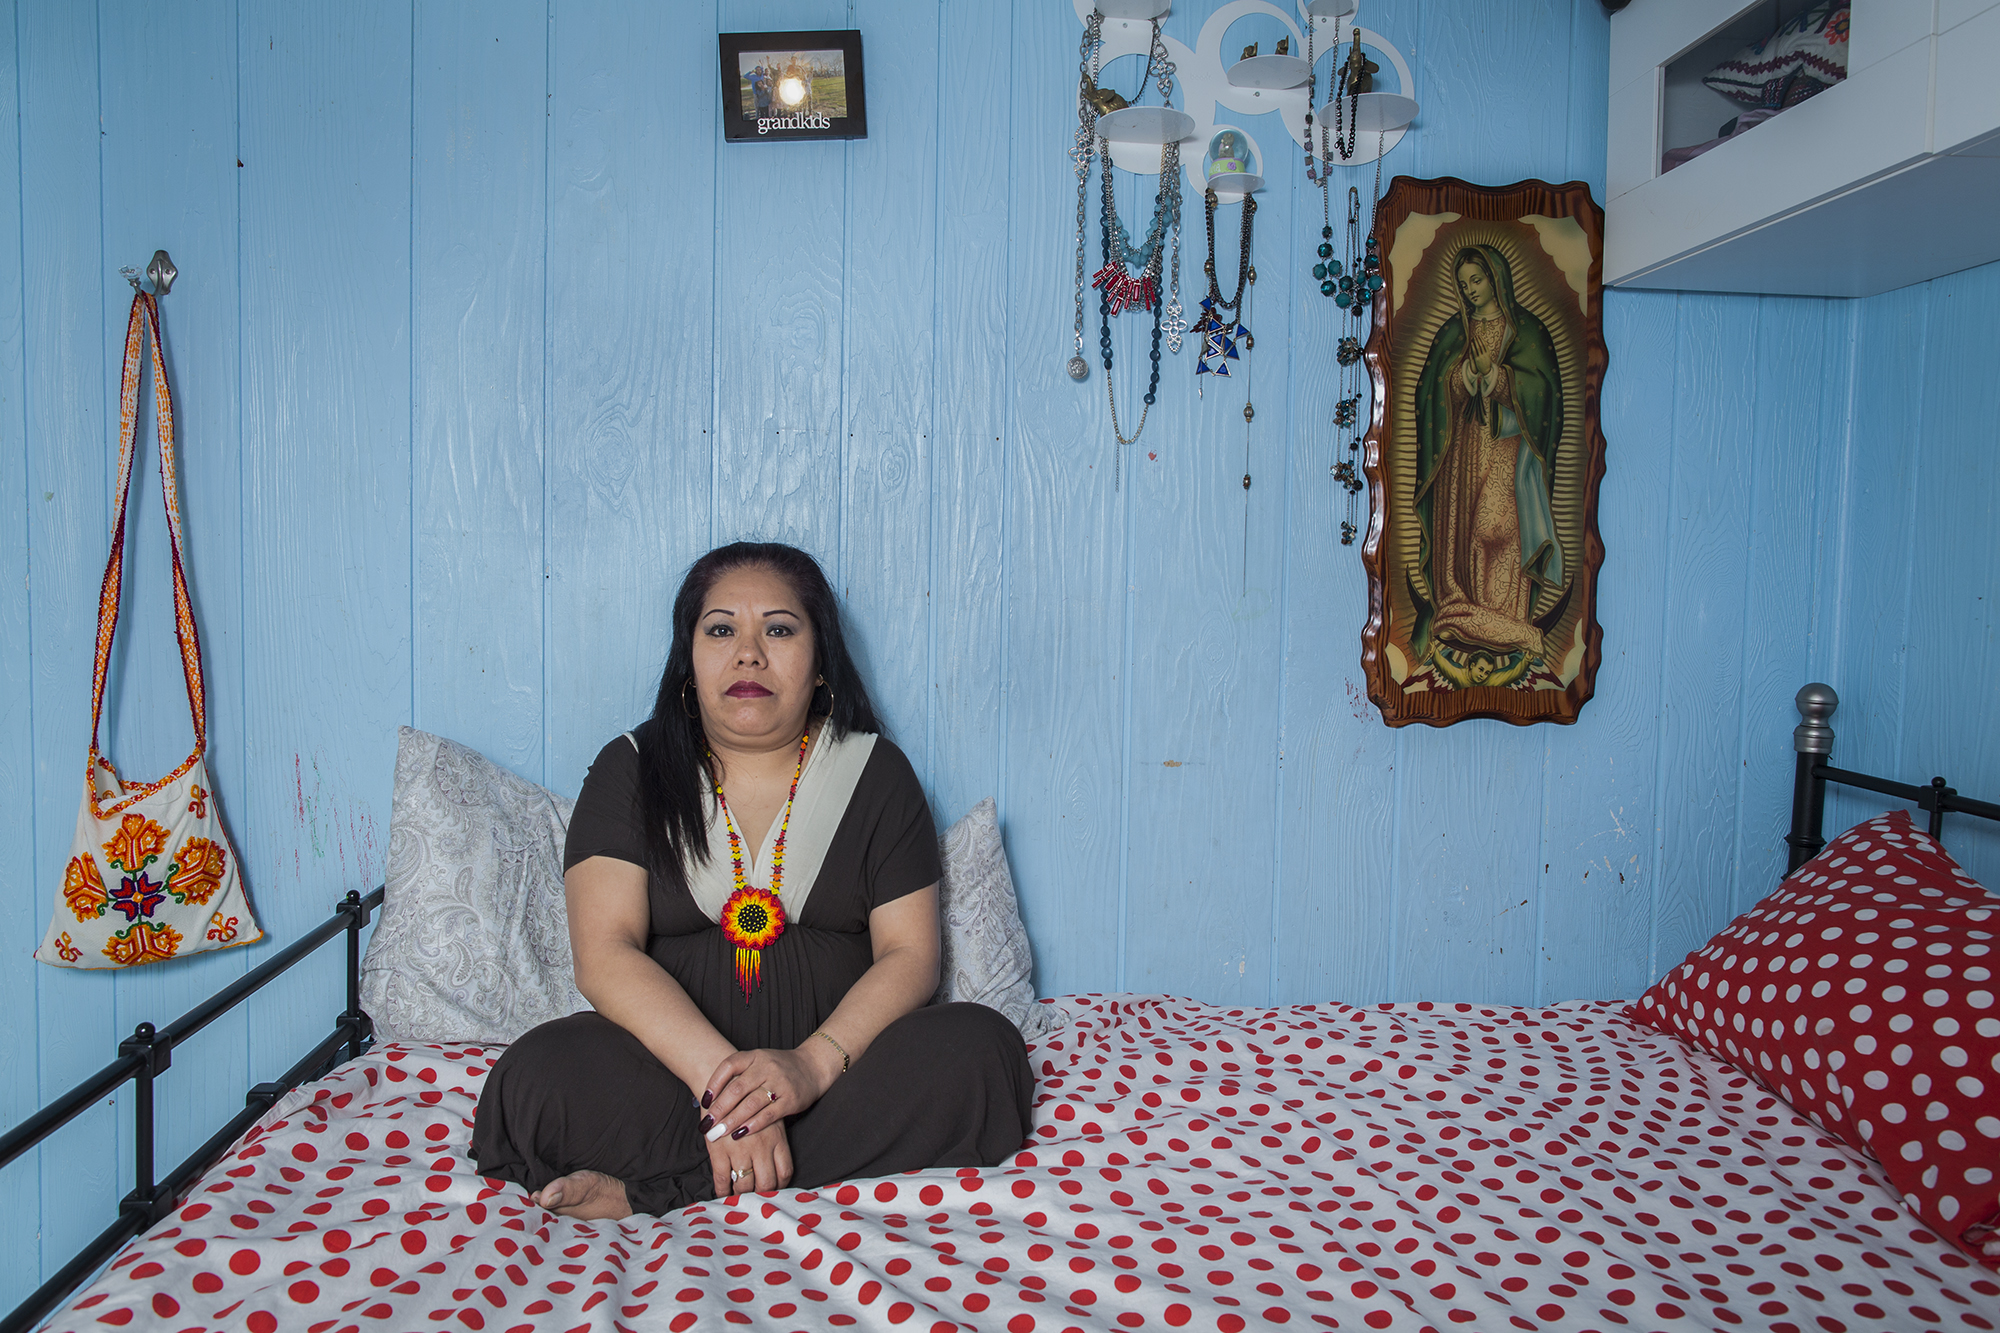 """Eugenia Cayetano is an immigrant from the state of Michoacán, México, born in a Mazahua indigenous family. Eugenia has been living in New York for 24 years and is part of a cleaning workers' cooperative named """"Si se puede,"""" based in Sunset Park, Brooklyn."""